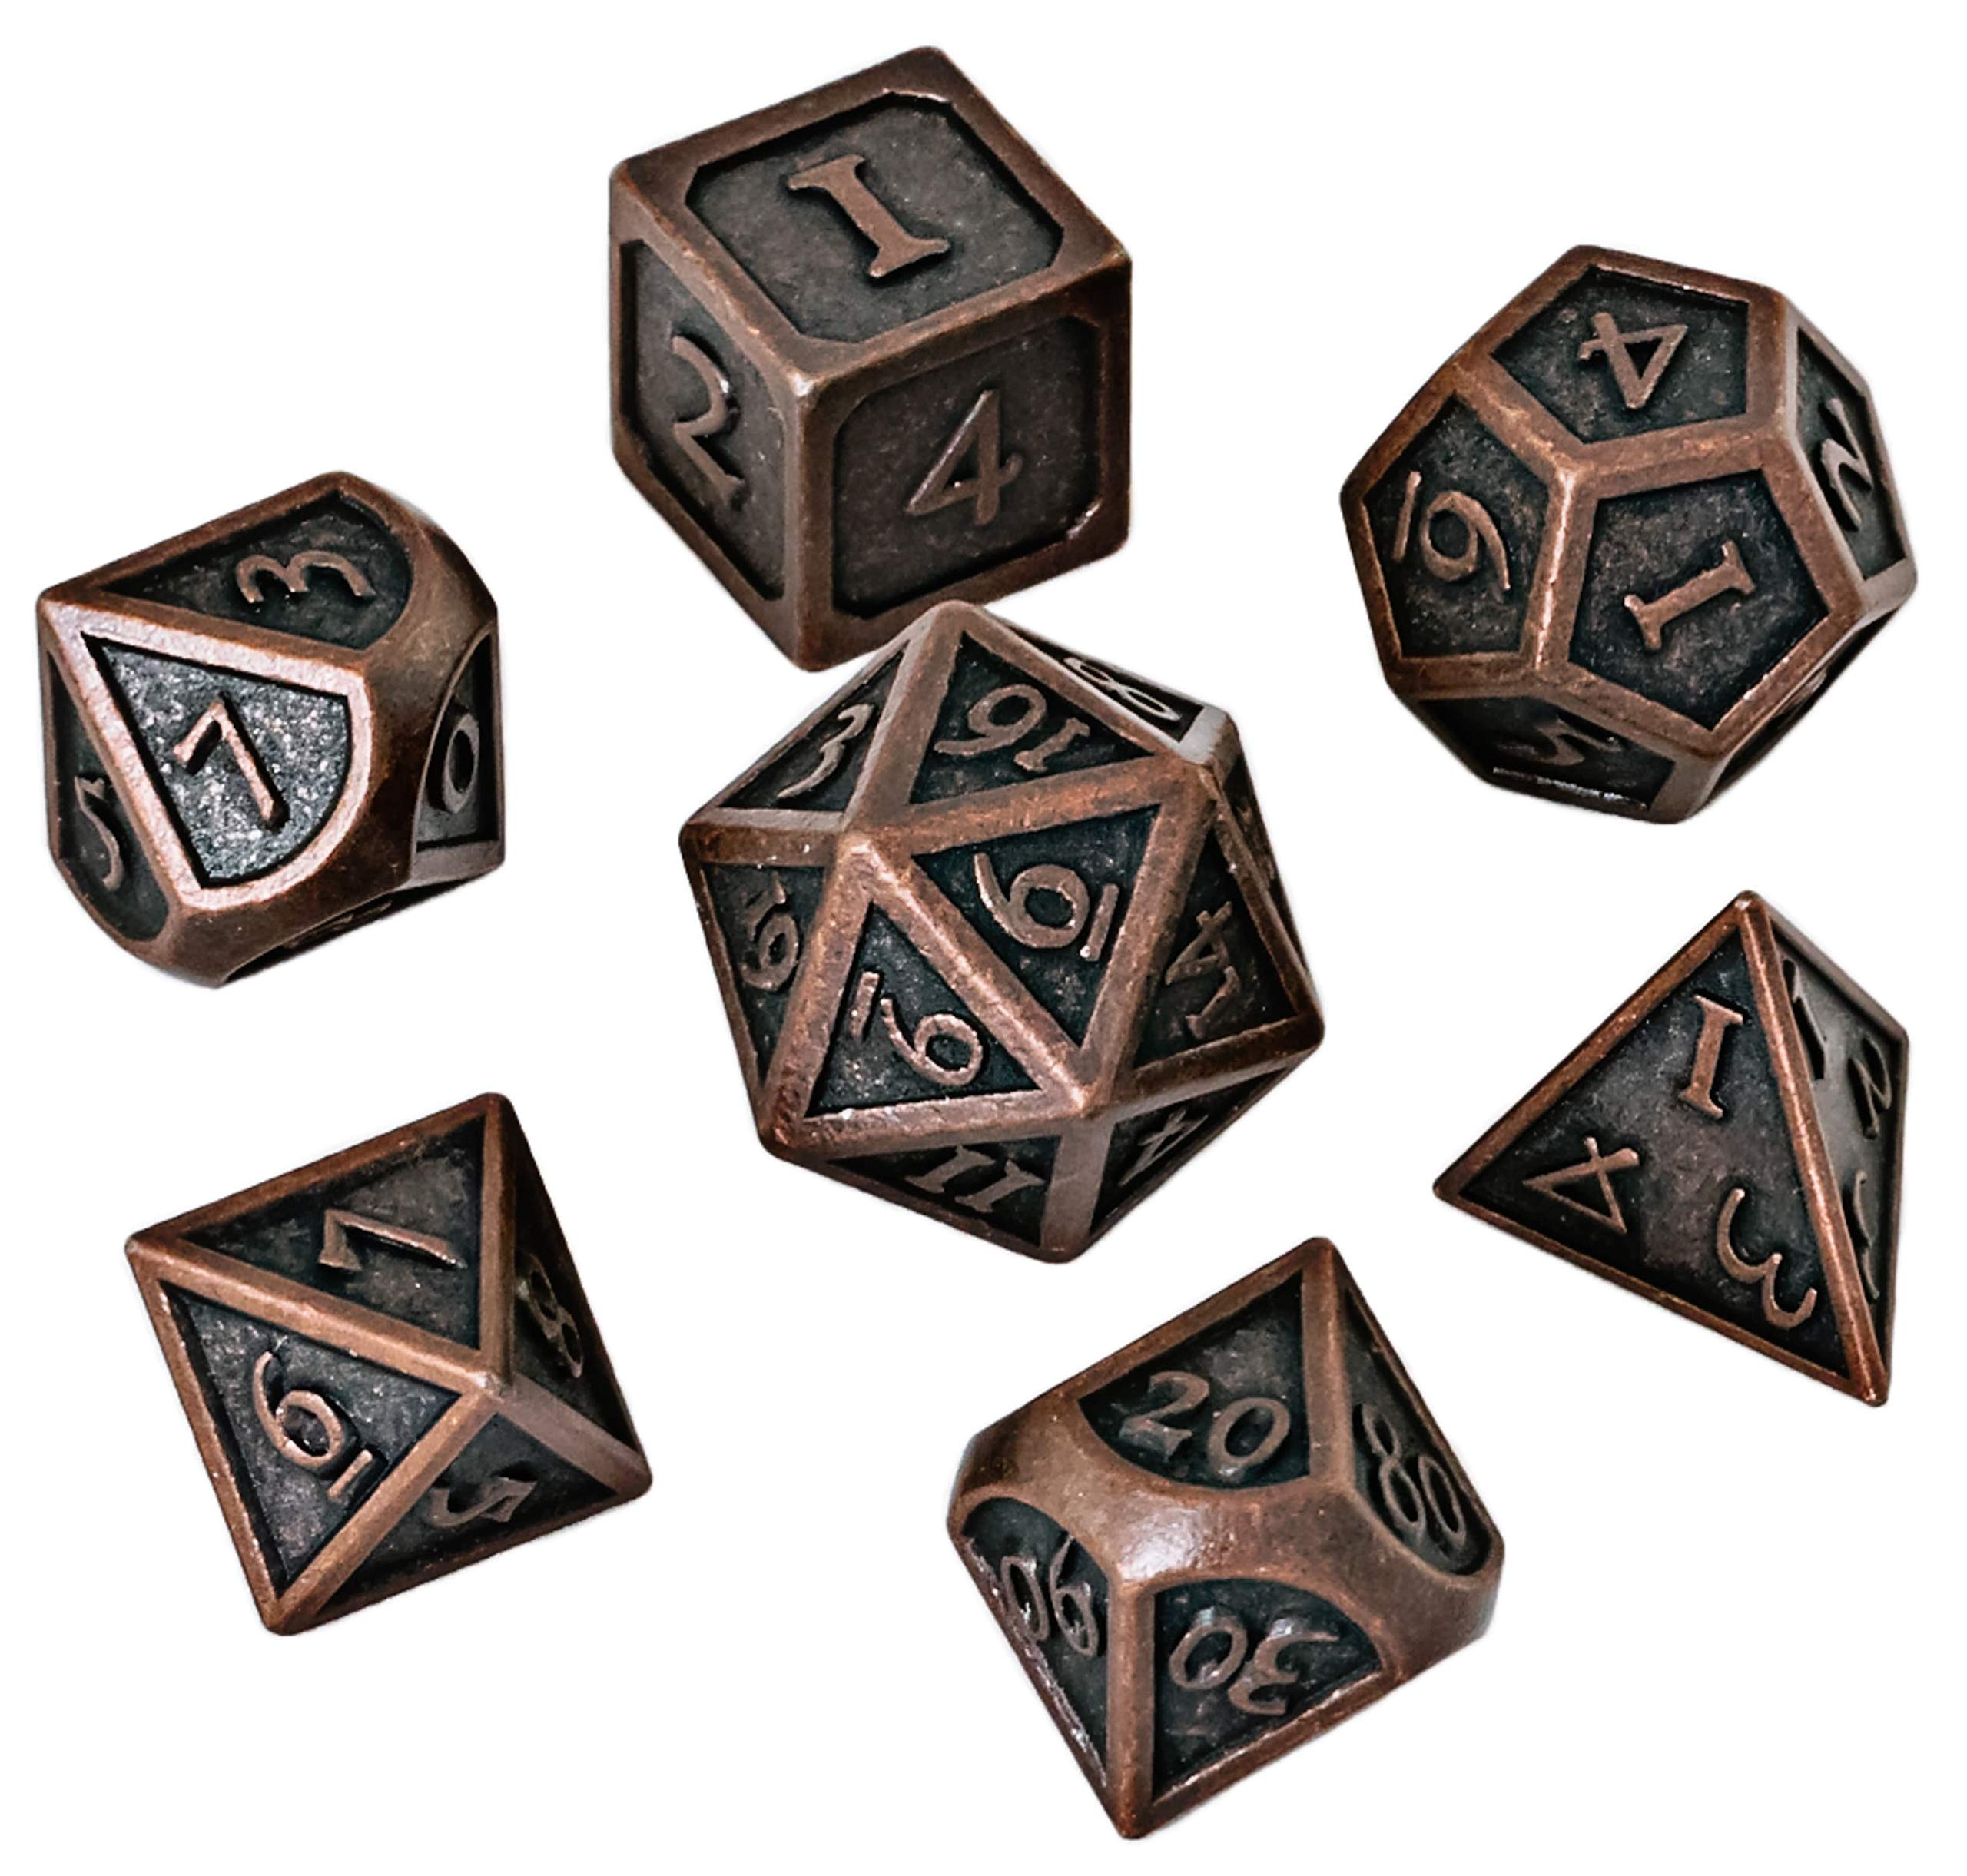 DND Dice Set - Metal Polyhedral Dungeons and Dragons Dice Sets with Dice Bag for RPG Gaming Including D20 - Blacksmith Craft Dice by Blacksmith Craft Dice